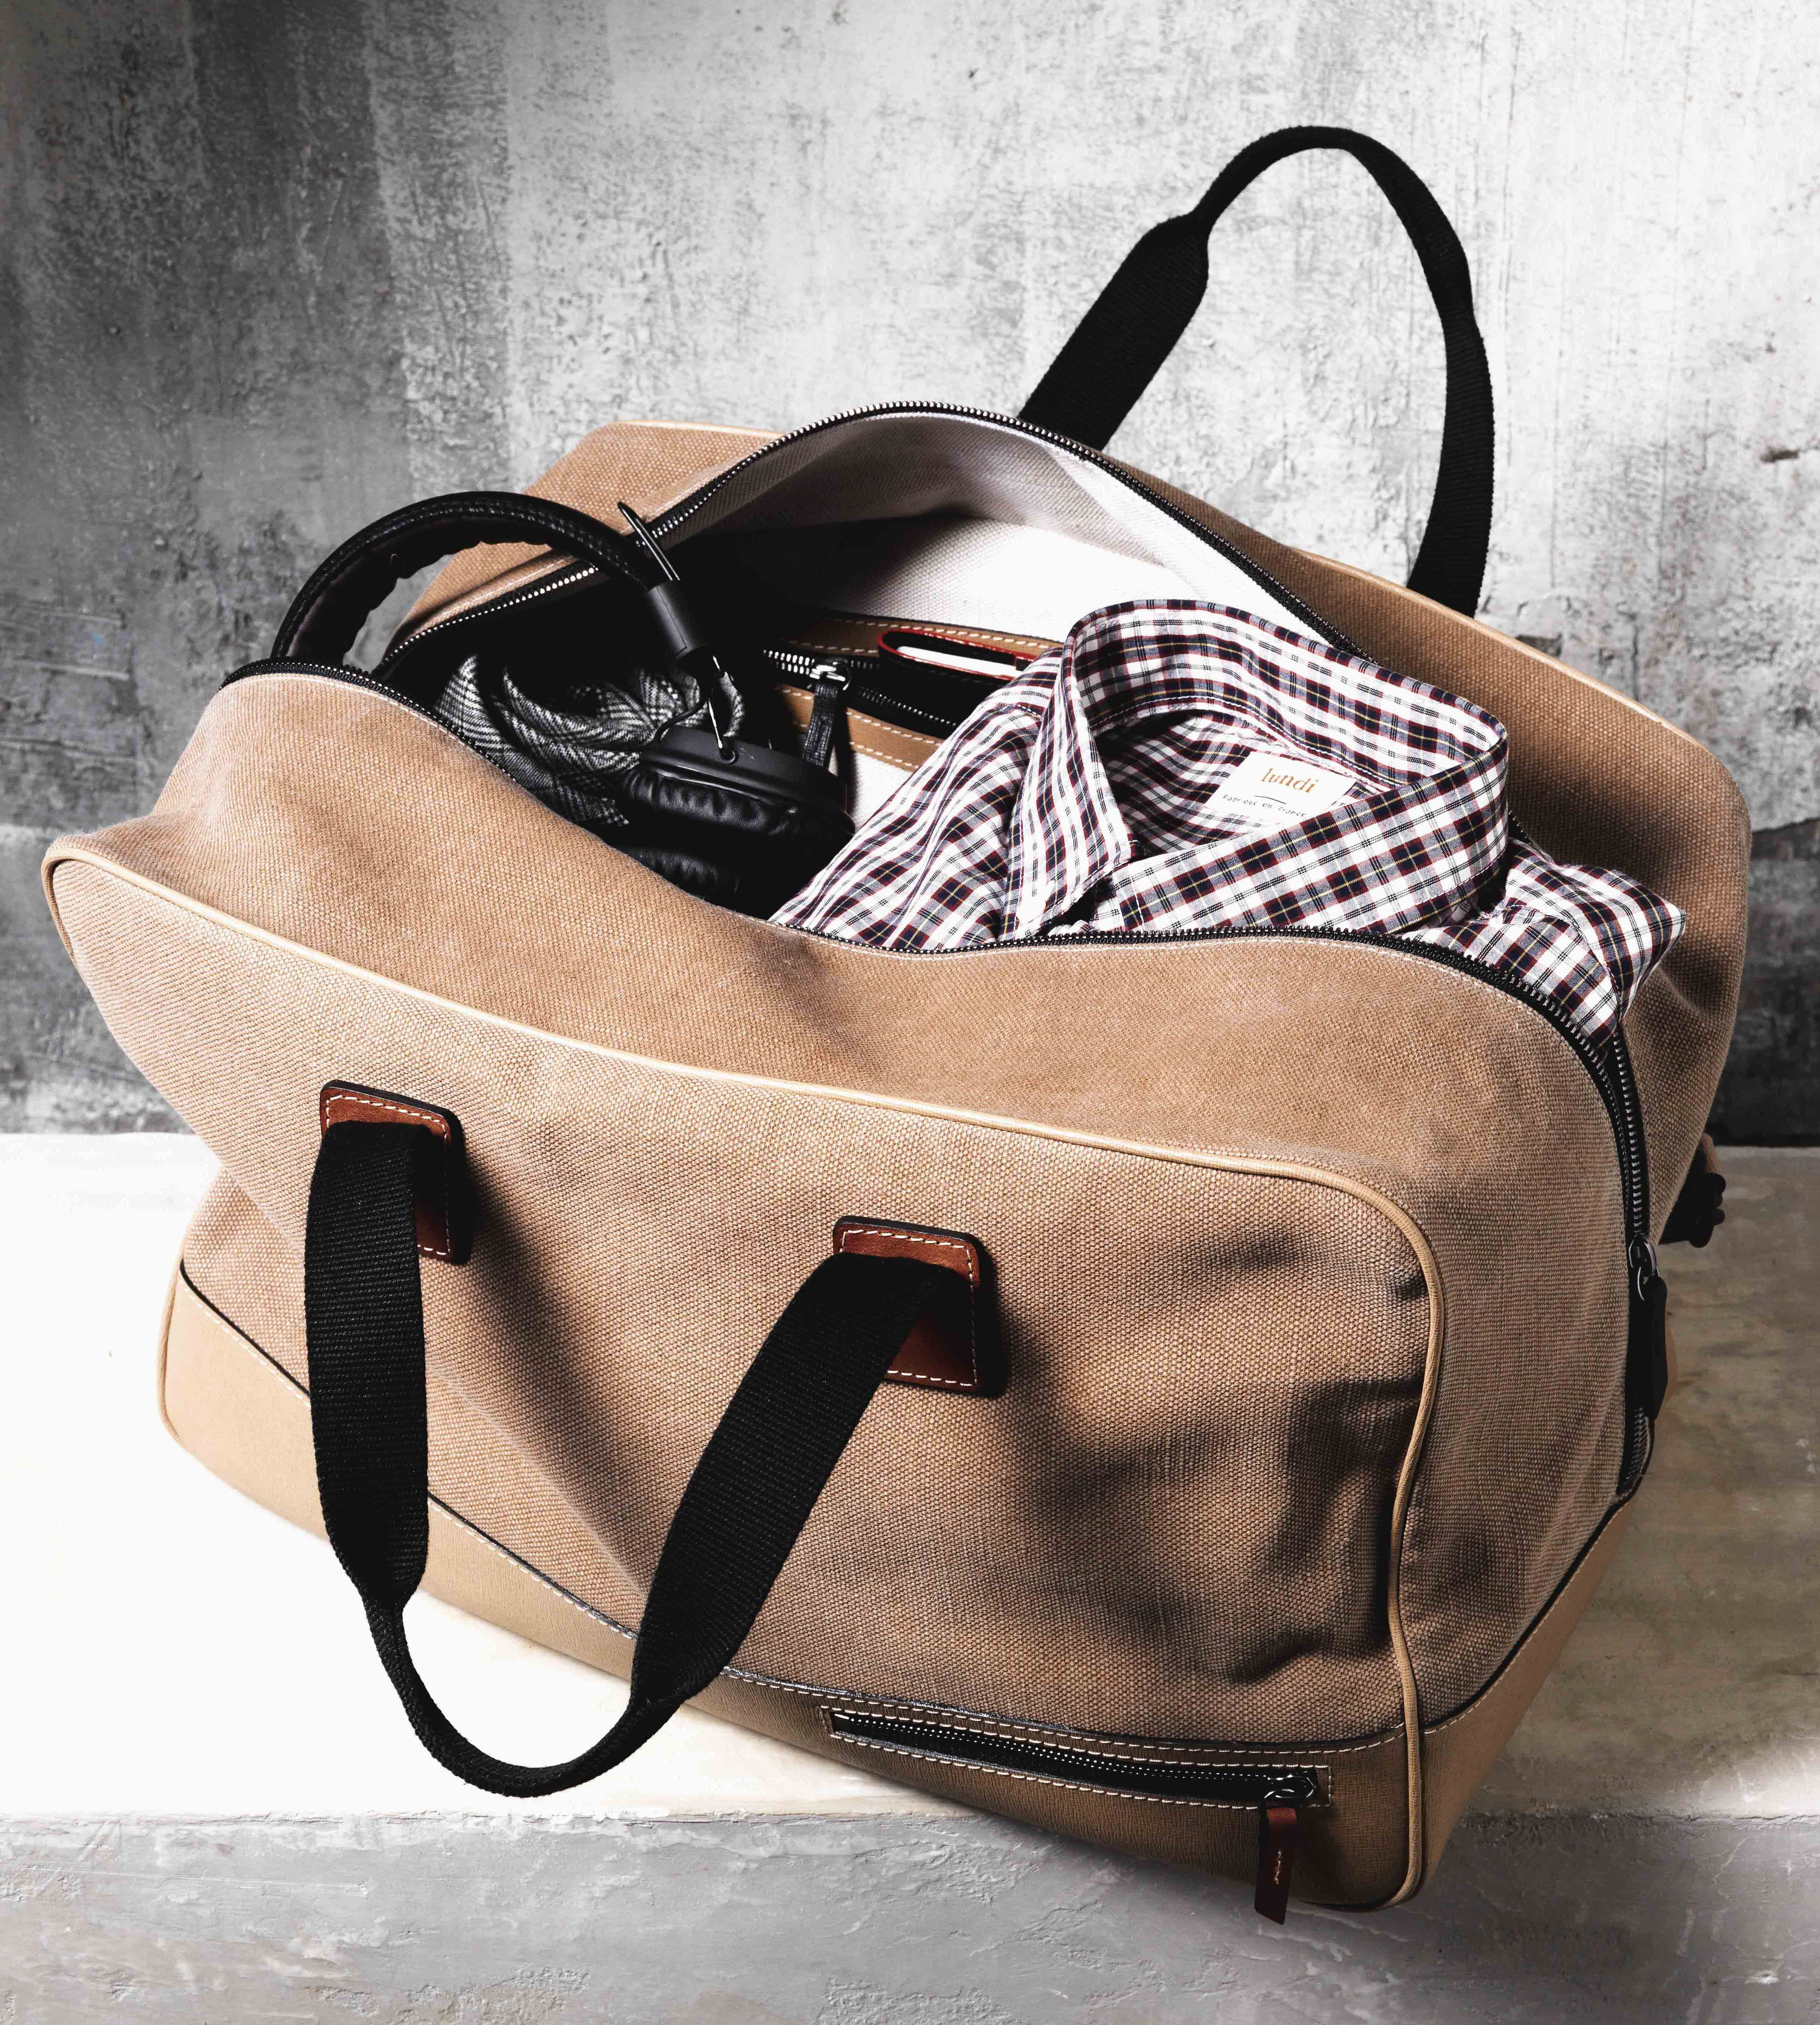 Bags Sac LundiToile Hipster Voyage Et ChicFringues Cuirgt; wPvm8nyN0O